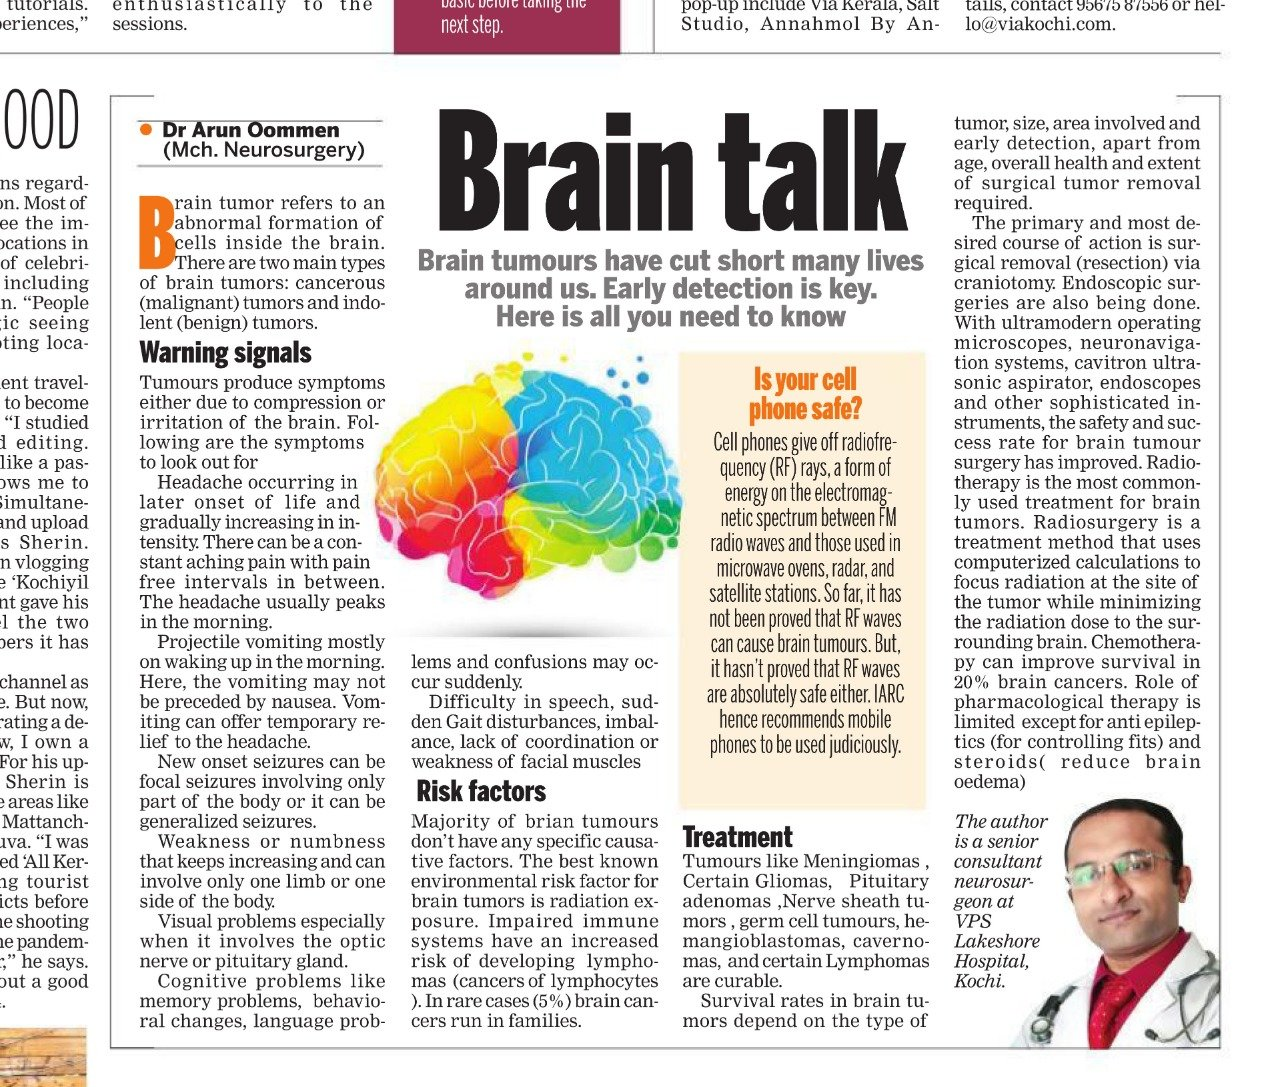 All you need to know about Brain Tumours